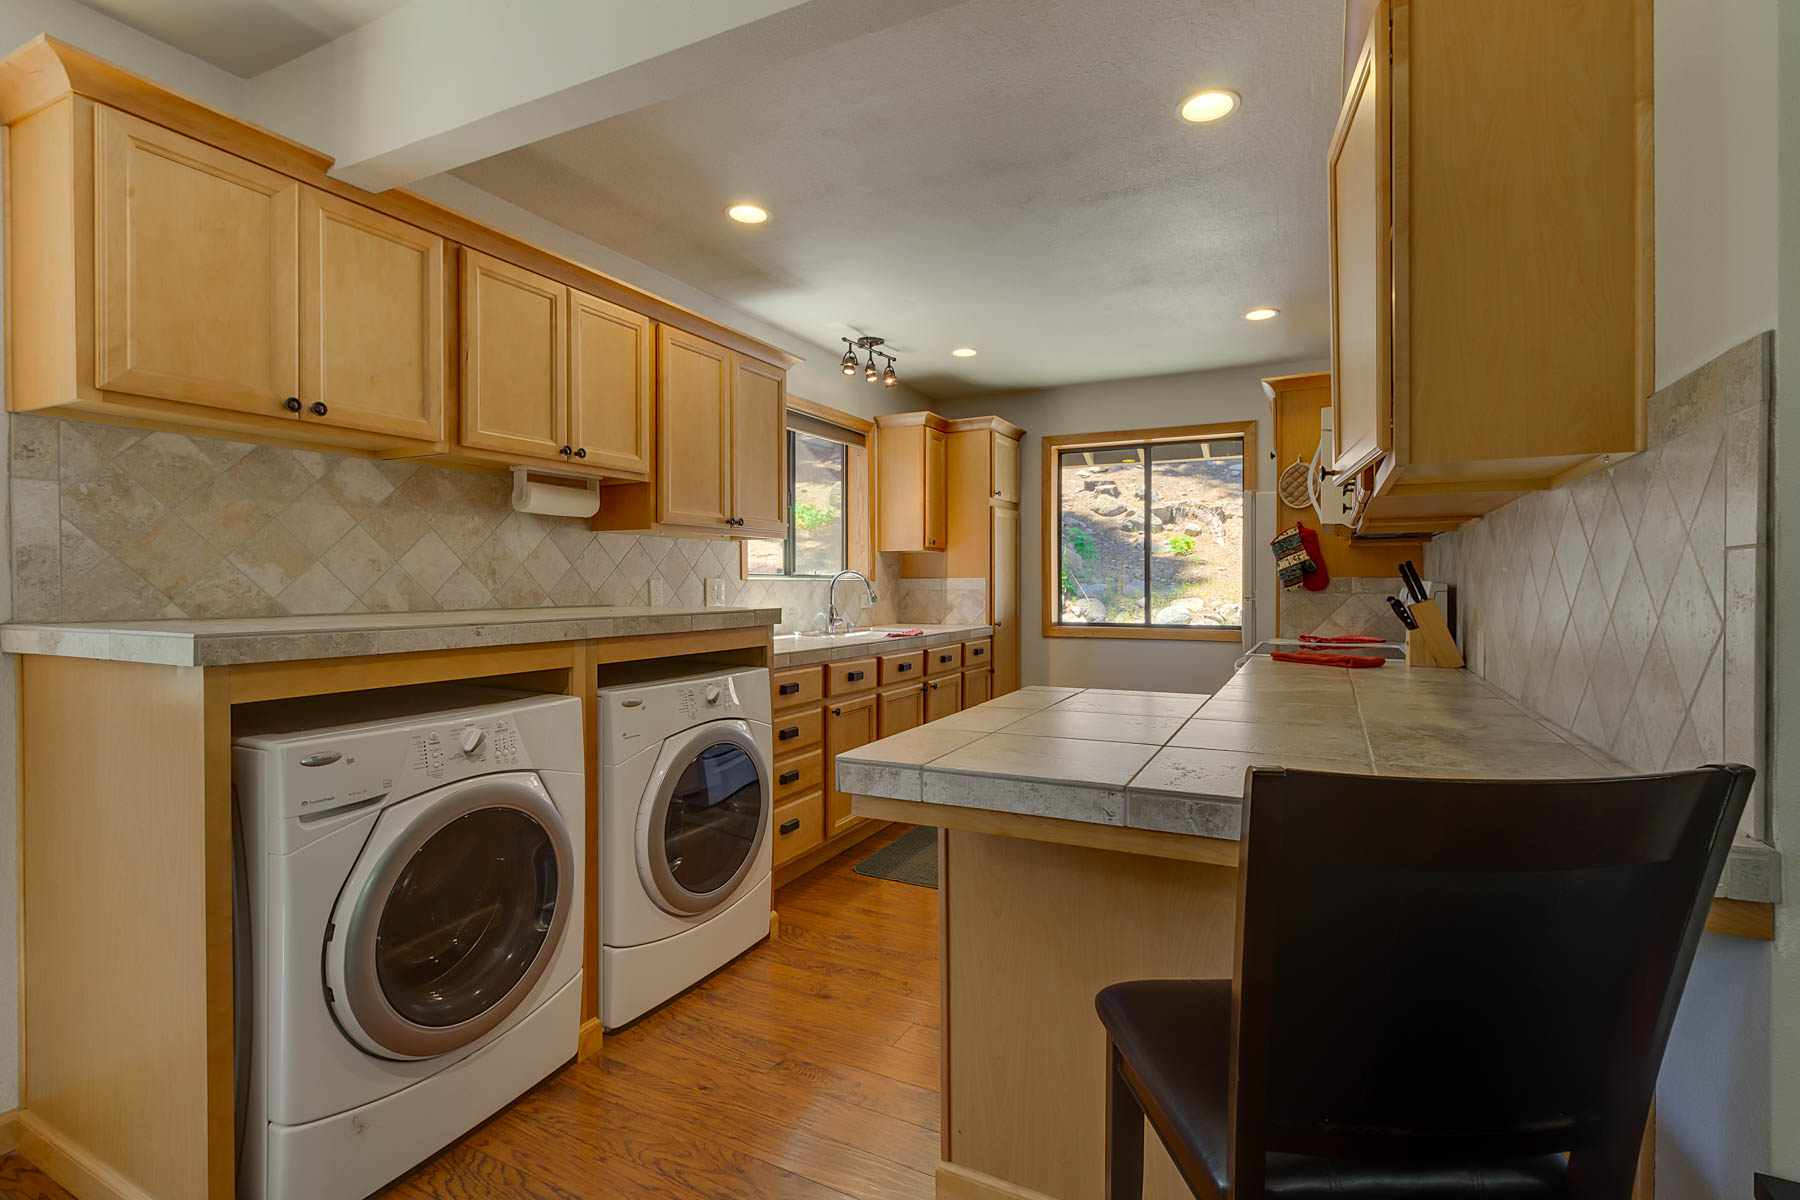 Additional photo for property listing at 3010 Electric Street, Homewood CA 96141 3010 Electric Street Homewood, California 96141 United States